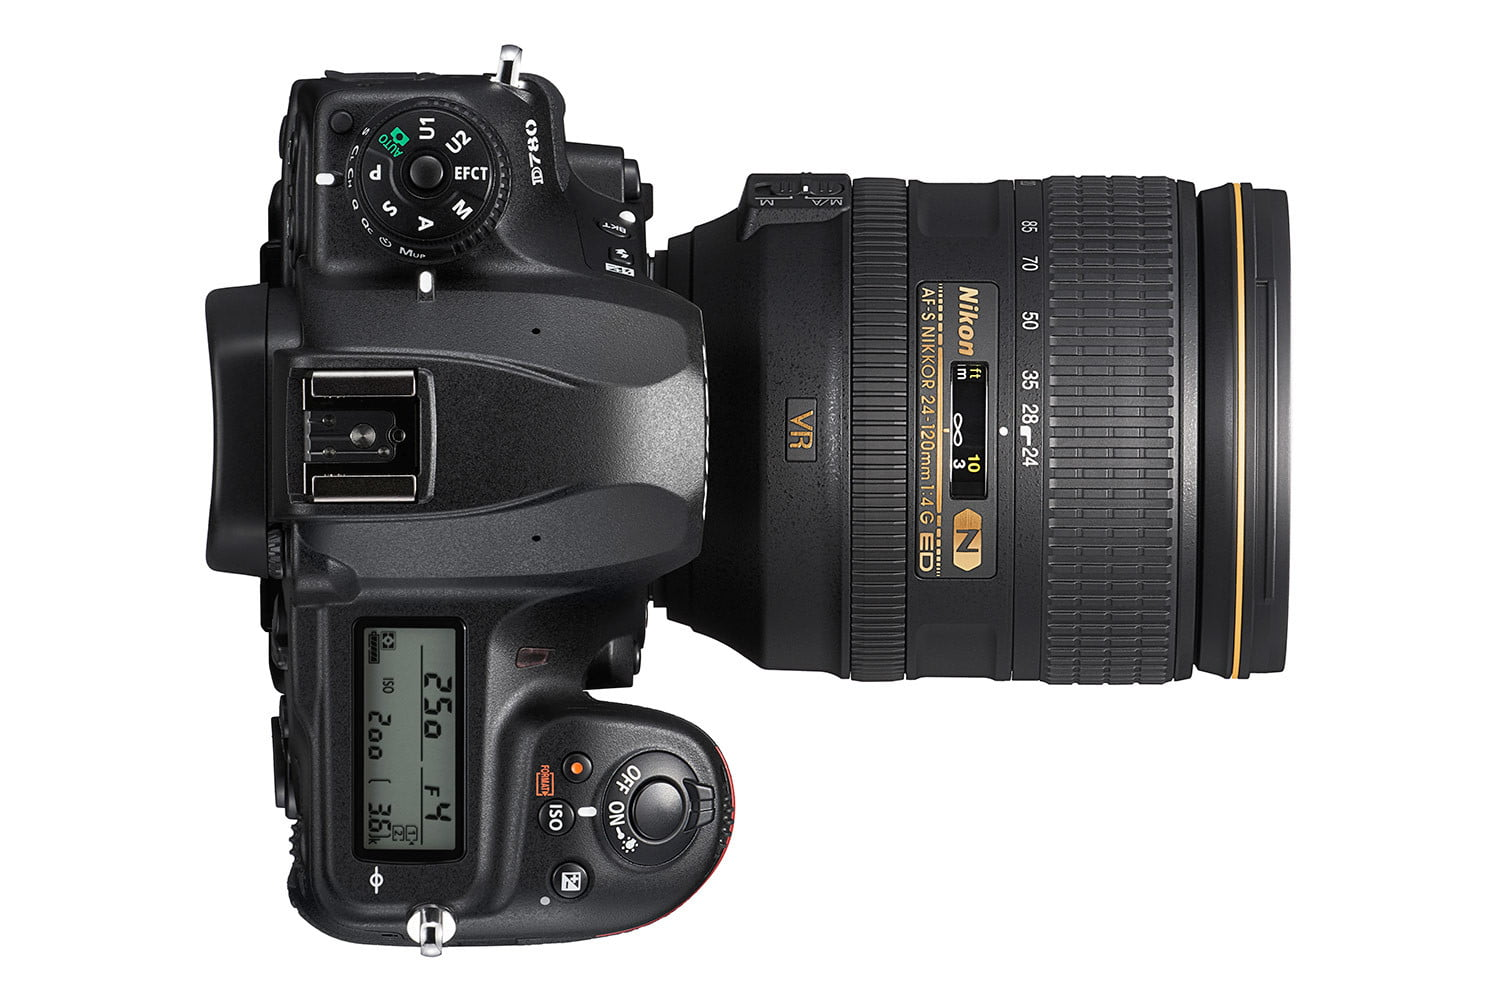 nikon d780 long awaited successor to d750 is here ces 2020 top press image